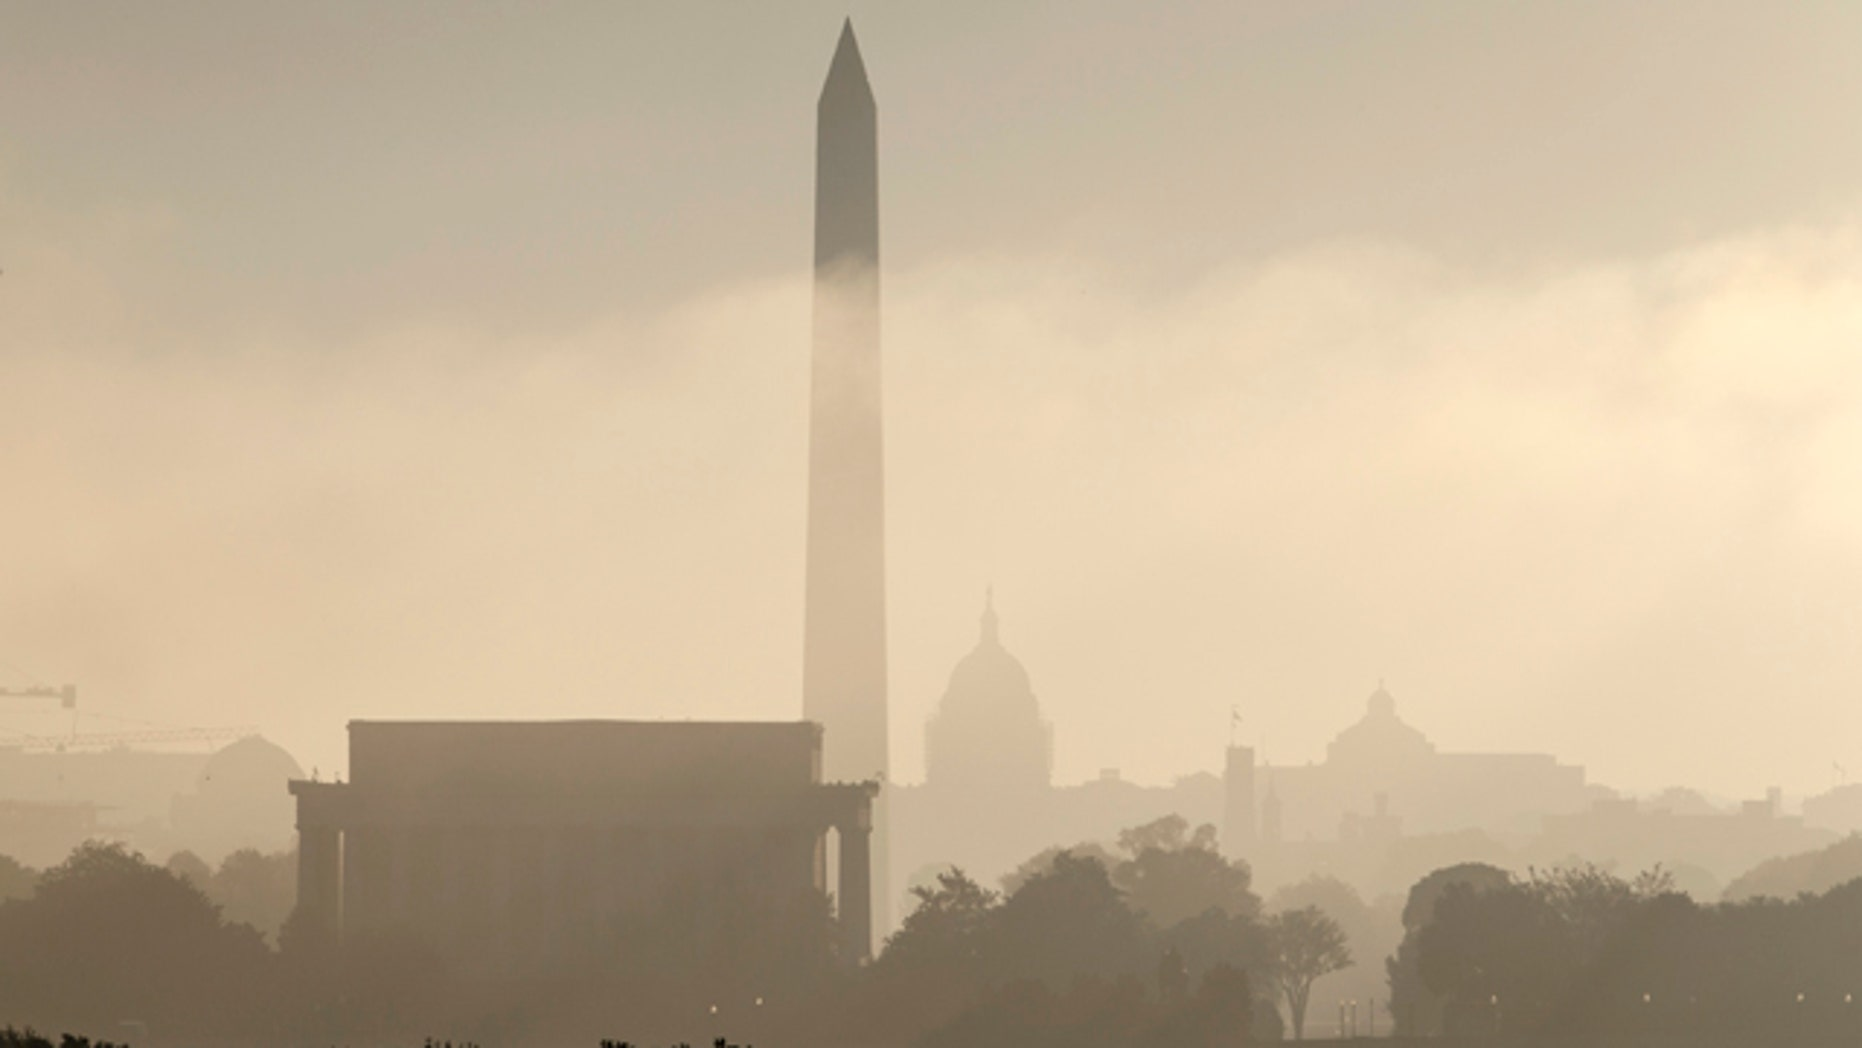 FILE- In this Sept. 26, 2014, photo, the monuments of Washington are silhouetted through the lifting fog over the nation's capitol as seen from an overlook in Arlington, Va. From left are, the Lincoln Memorial, Washington Monument, the Capitol, the Smithsonian Castle, and the Library of Congress. (AP Photo/J. Scott Applewhite, File)